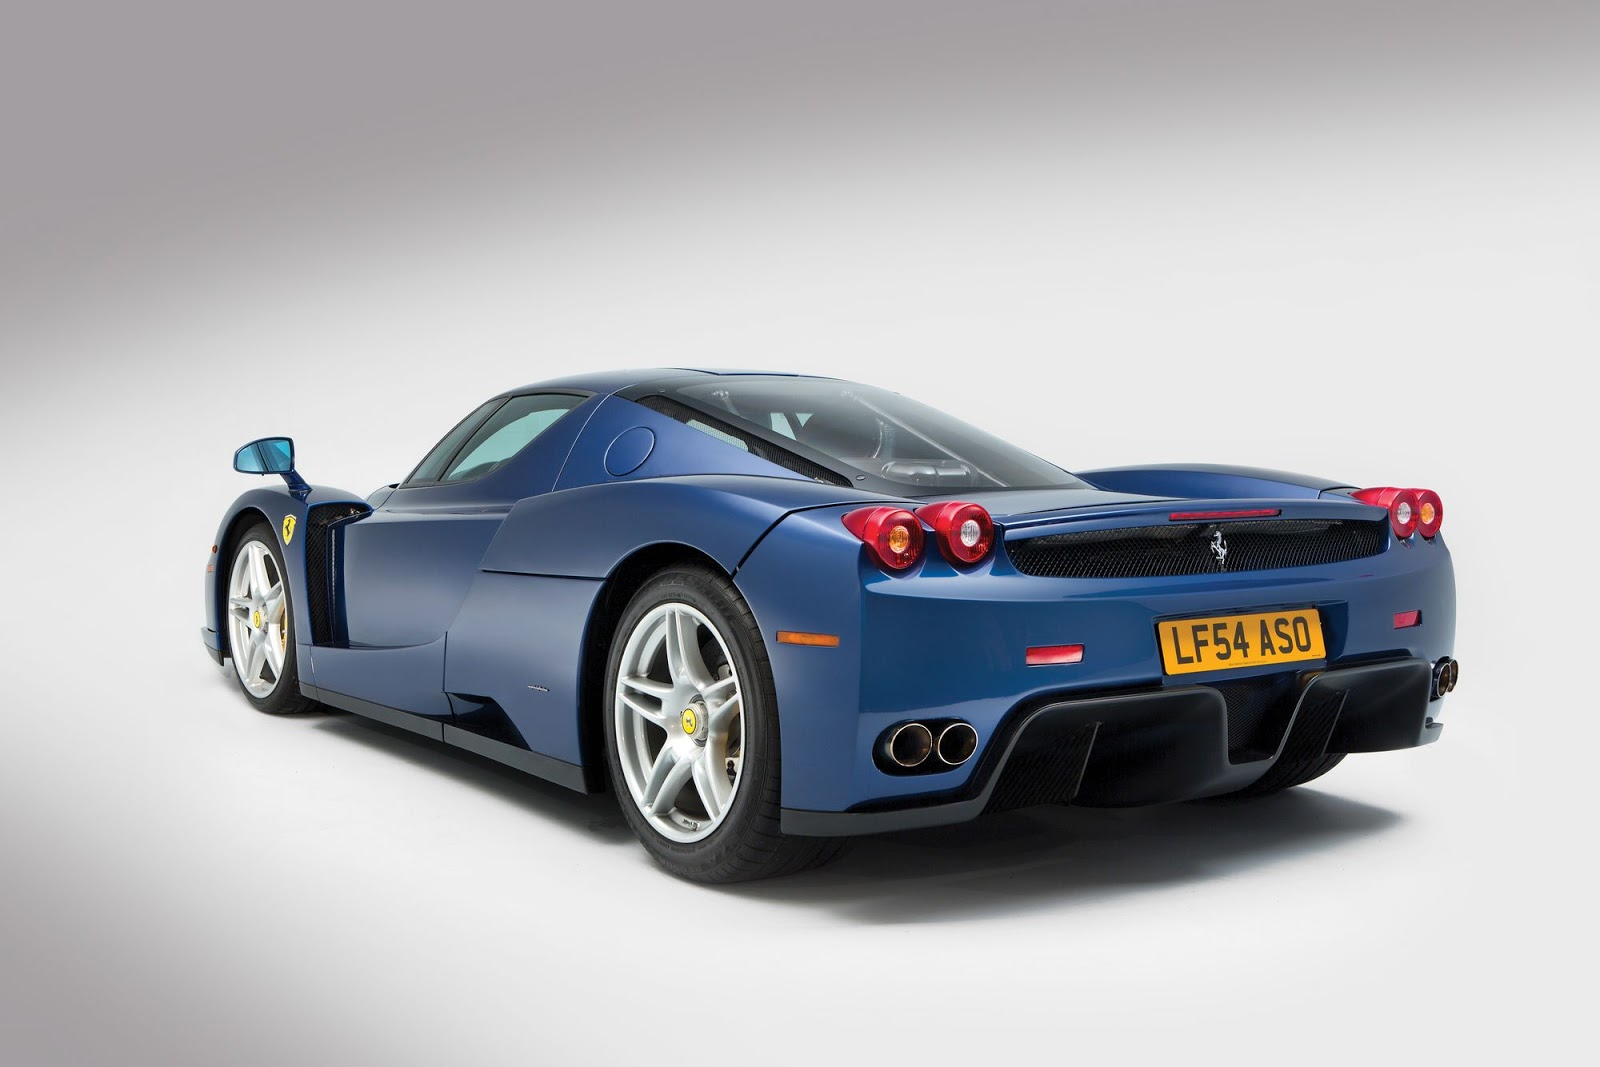 How Much Does It Cost To Paint A Car >> Rare Blu Tour de France Ferrari Enzo Bound For Auction | Carscoops